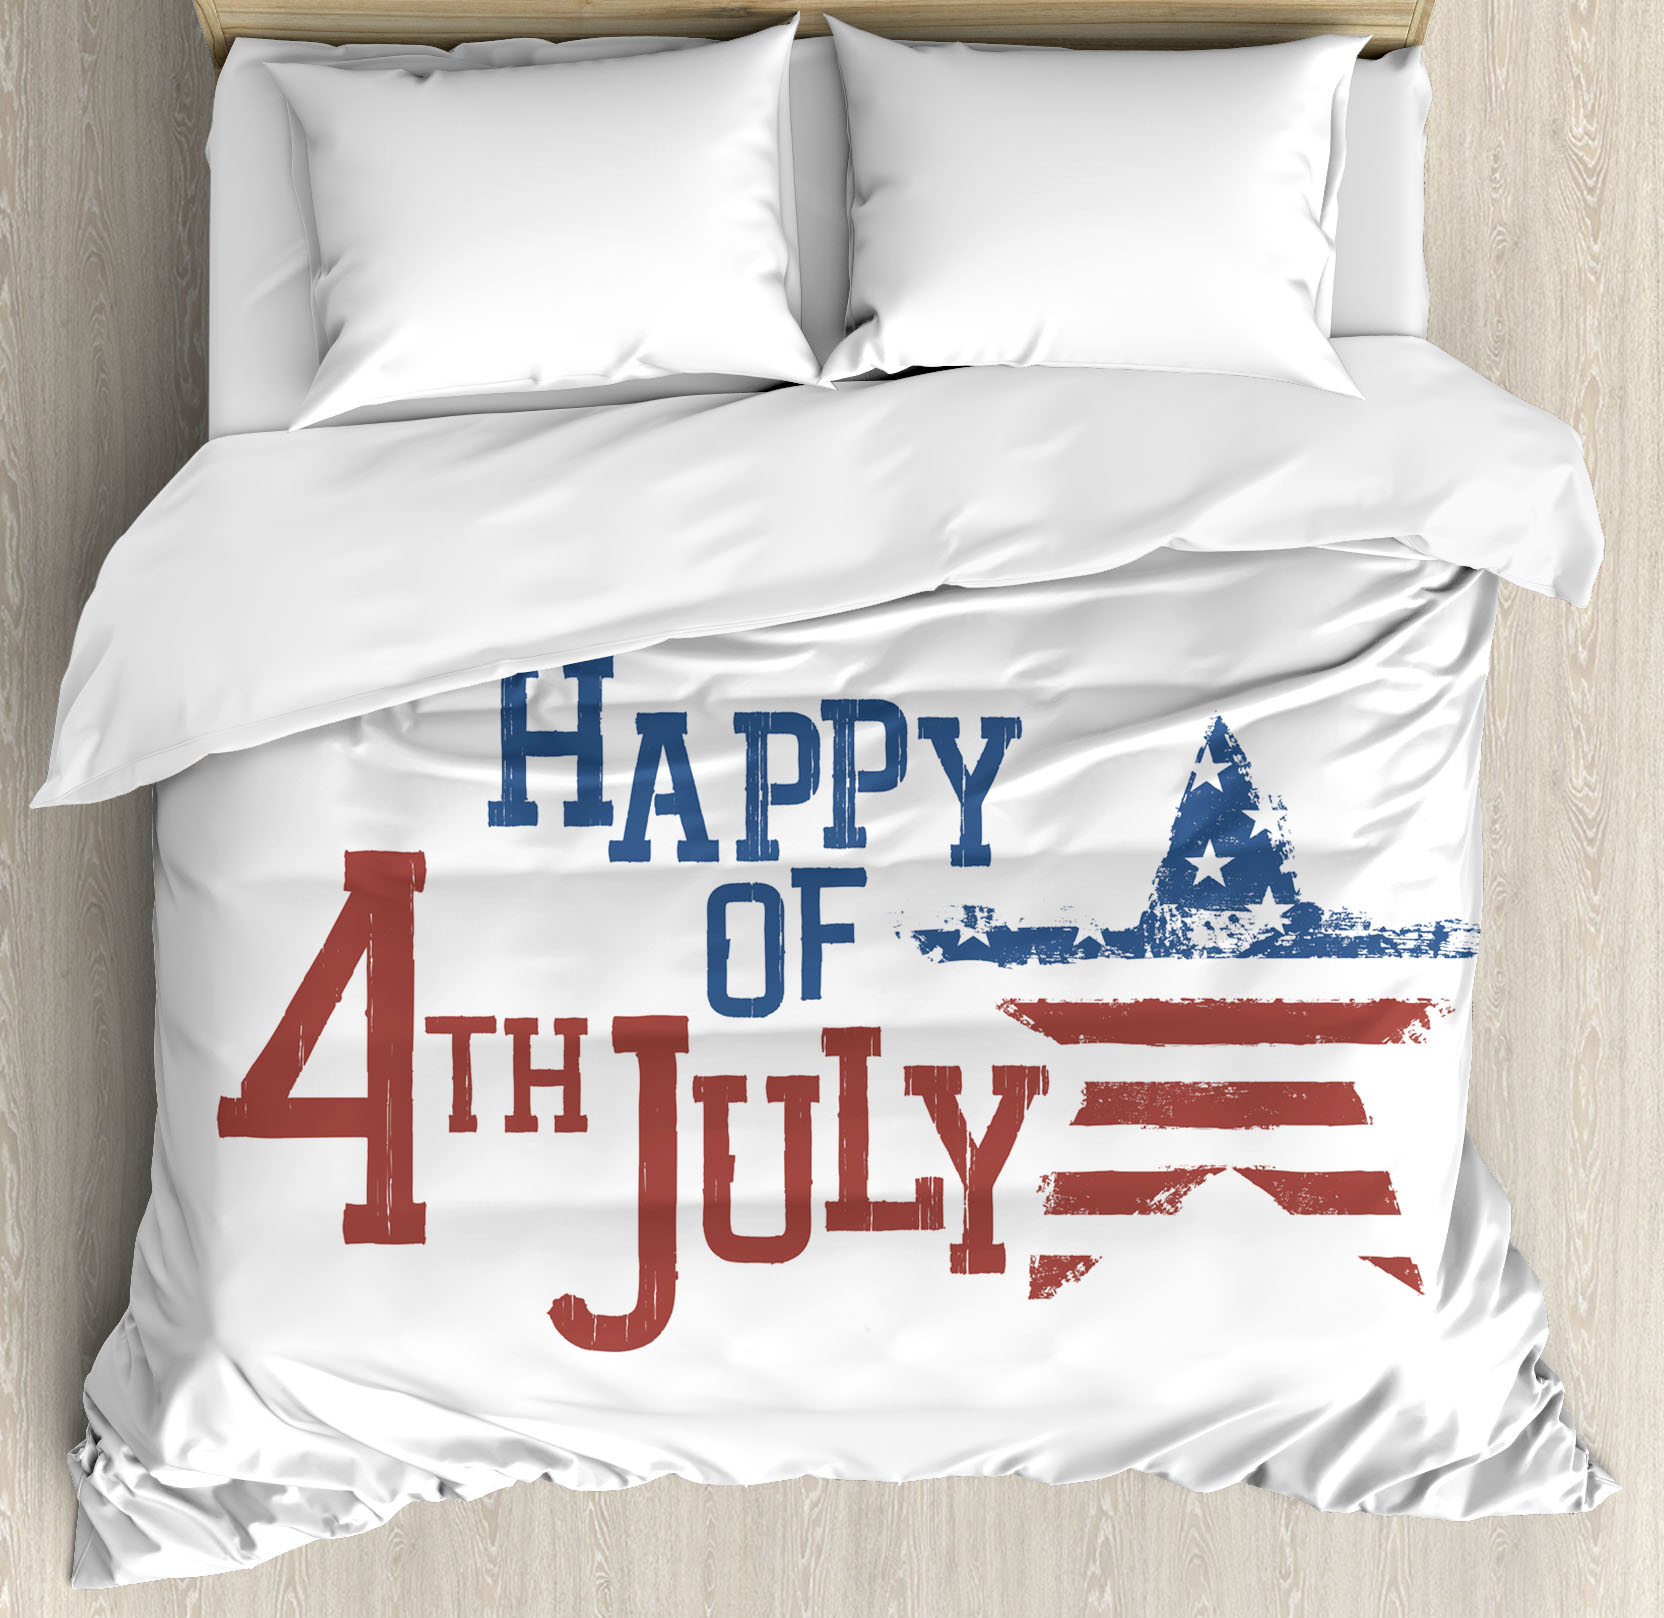 4th of July Decor King Size Duvet Cover Set, Patchwork Style American Stars and Stripes... by Kozmos